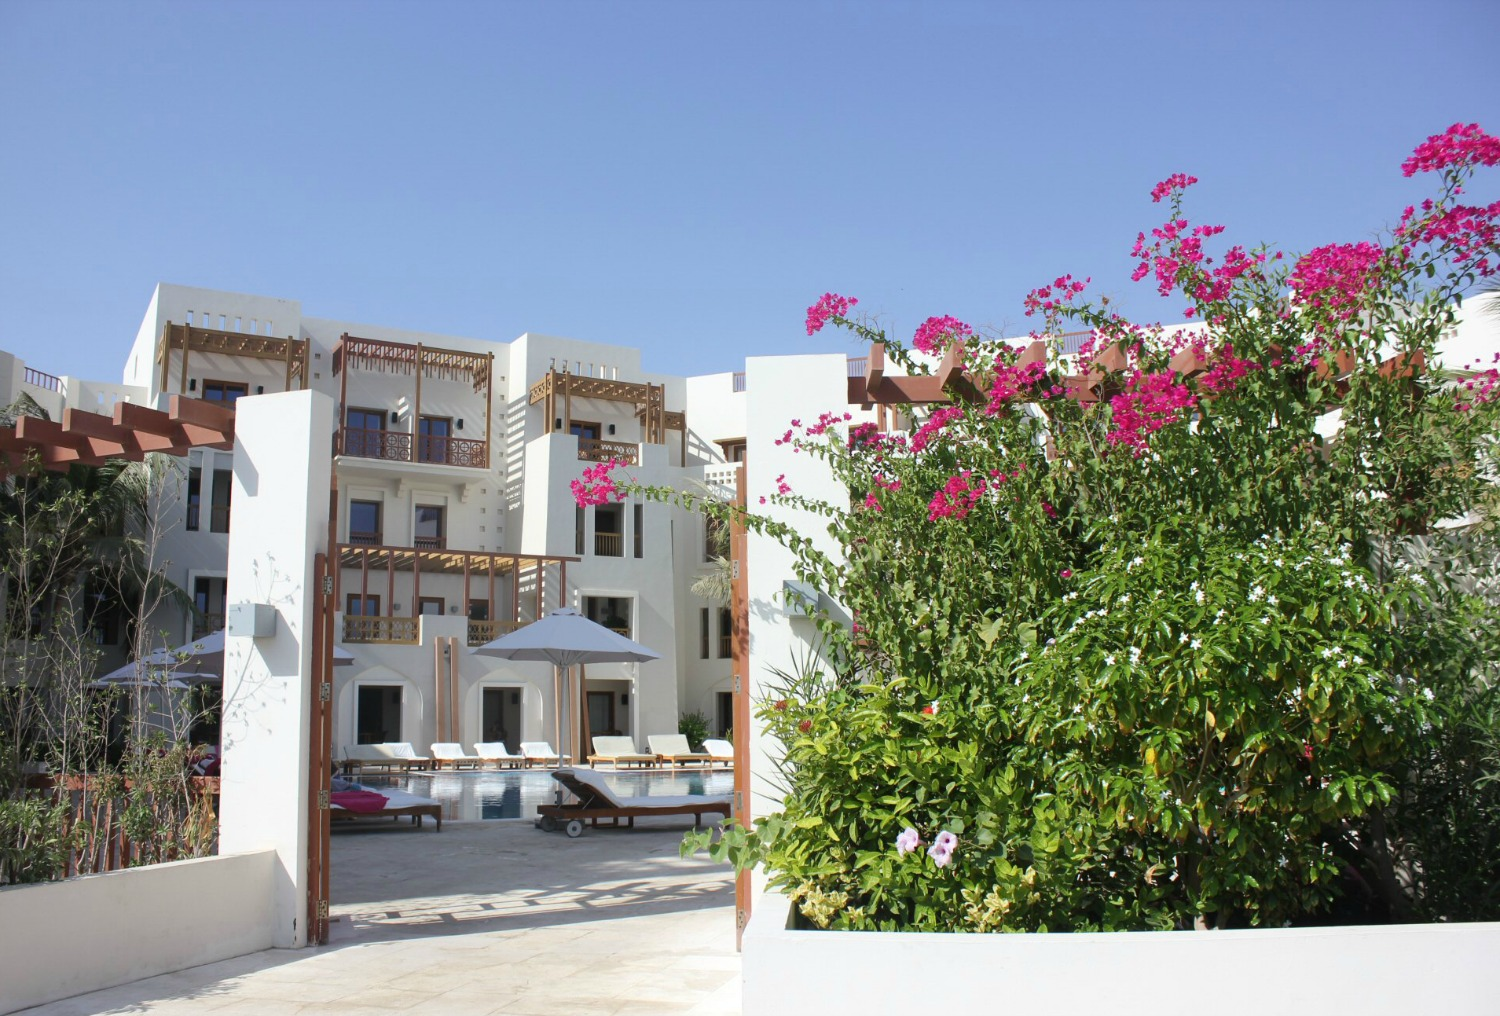 The white buildings of Sifawy Boutique Hotel seen through a gate with pink bougainvillea not far from Muscat, Oman - my nine reasons to visit Oman with kids